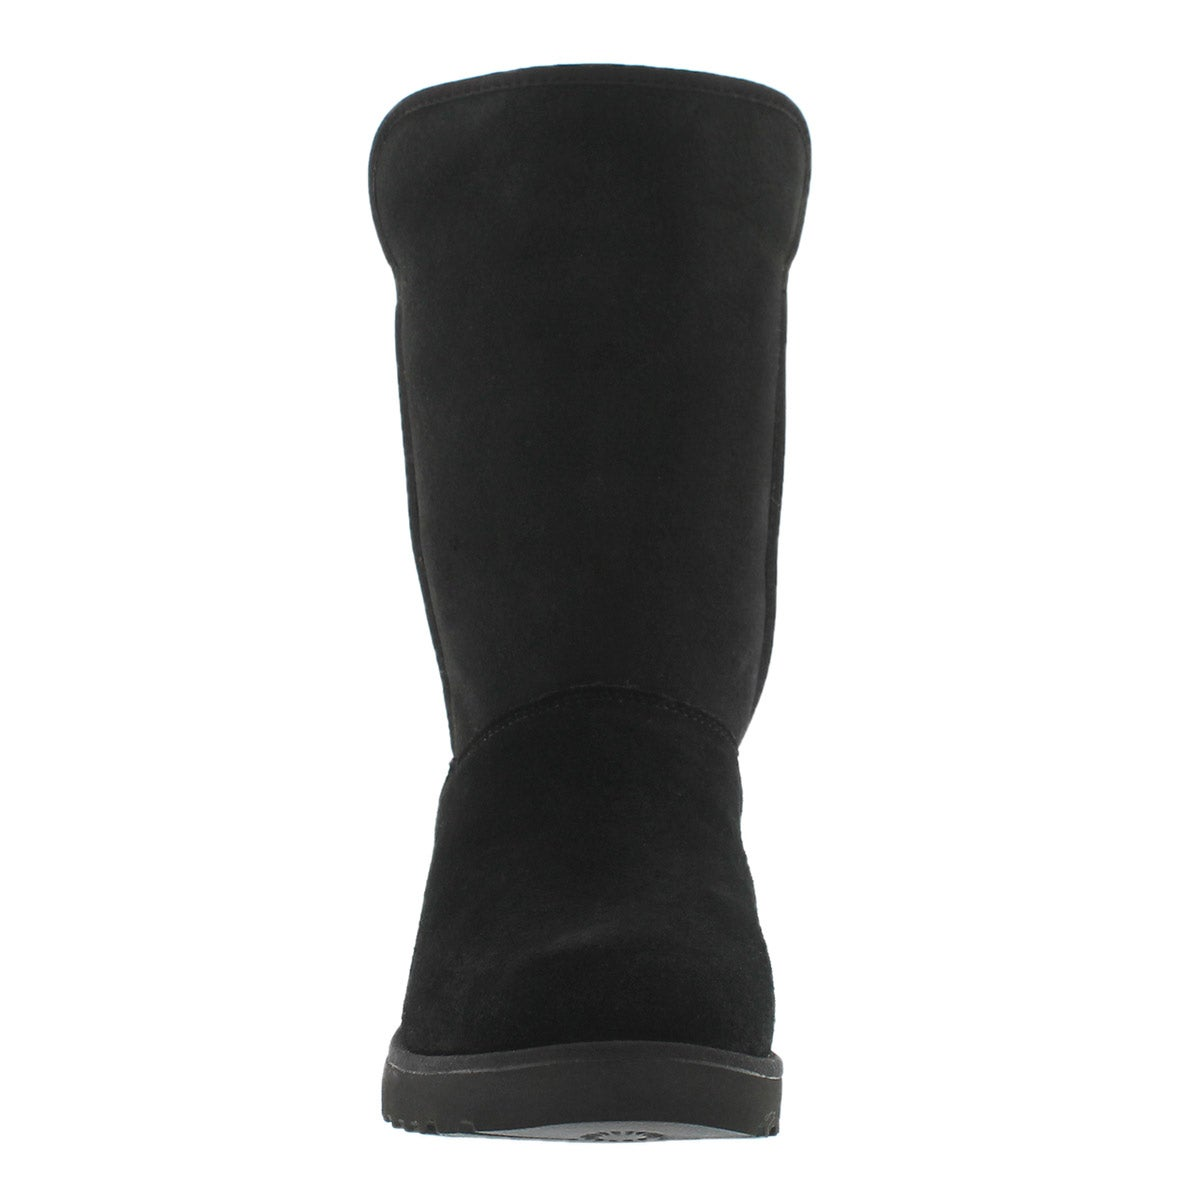 Botte talon comp Amie, mouton noir, fem